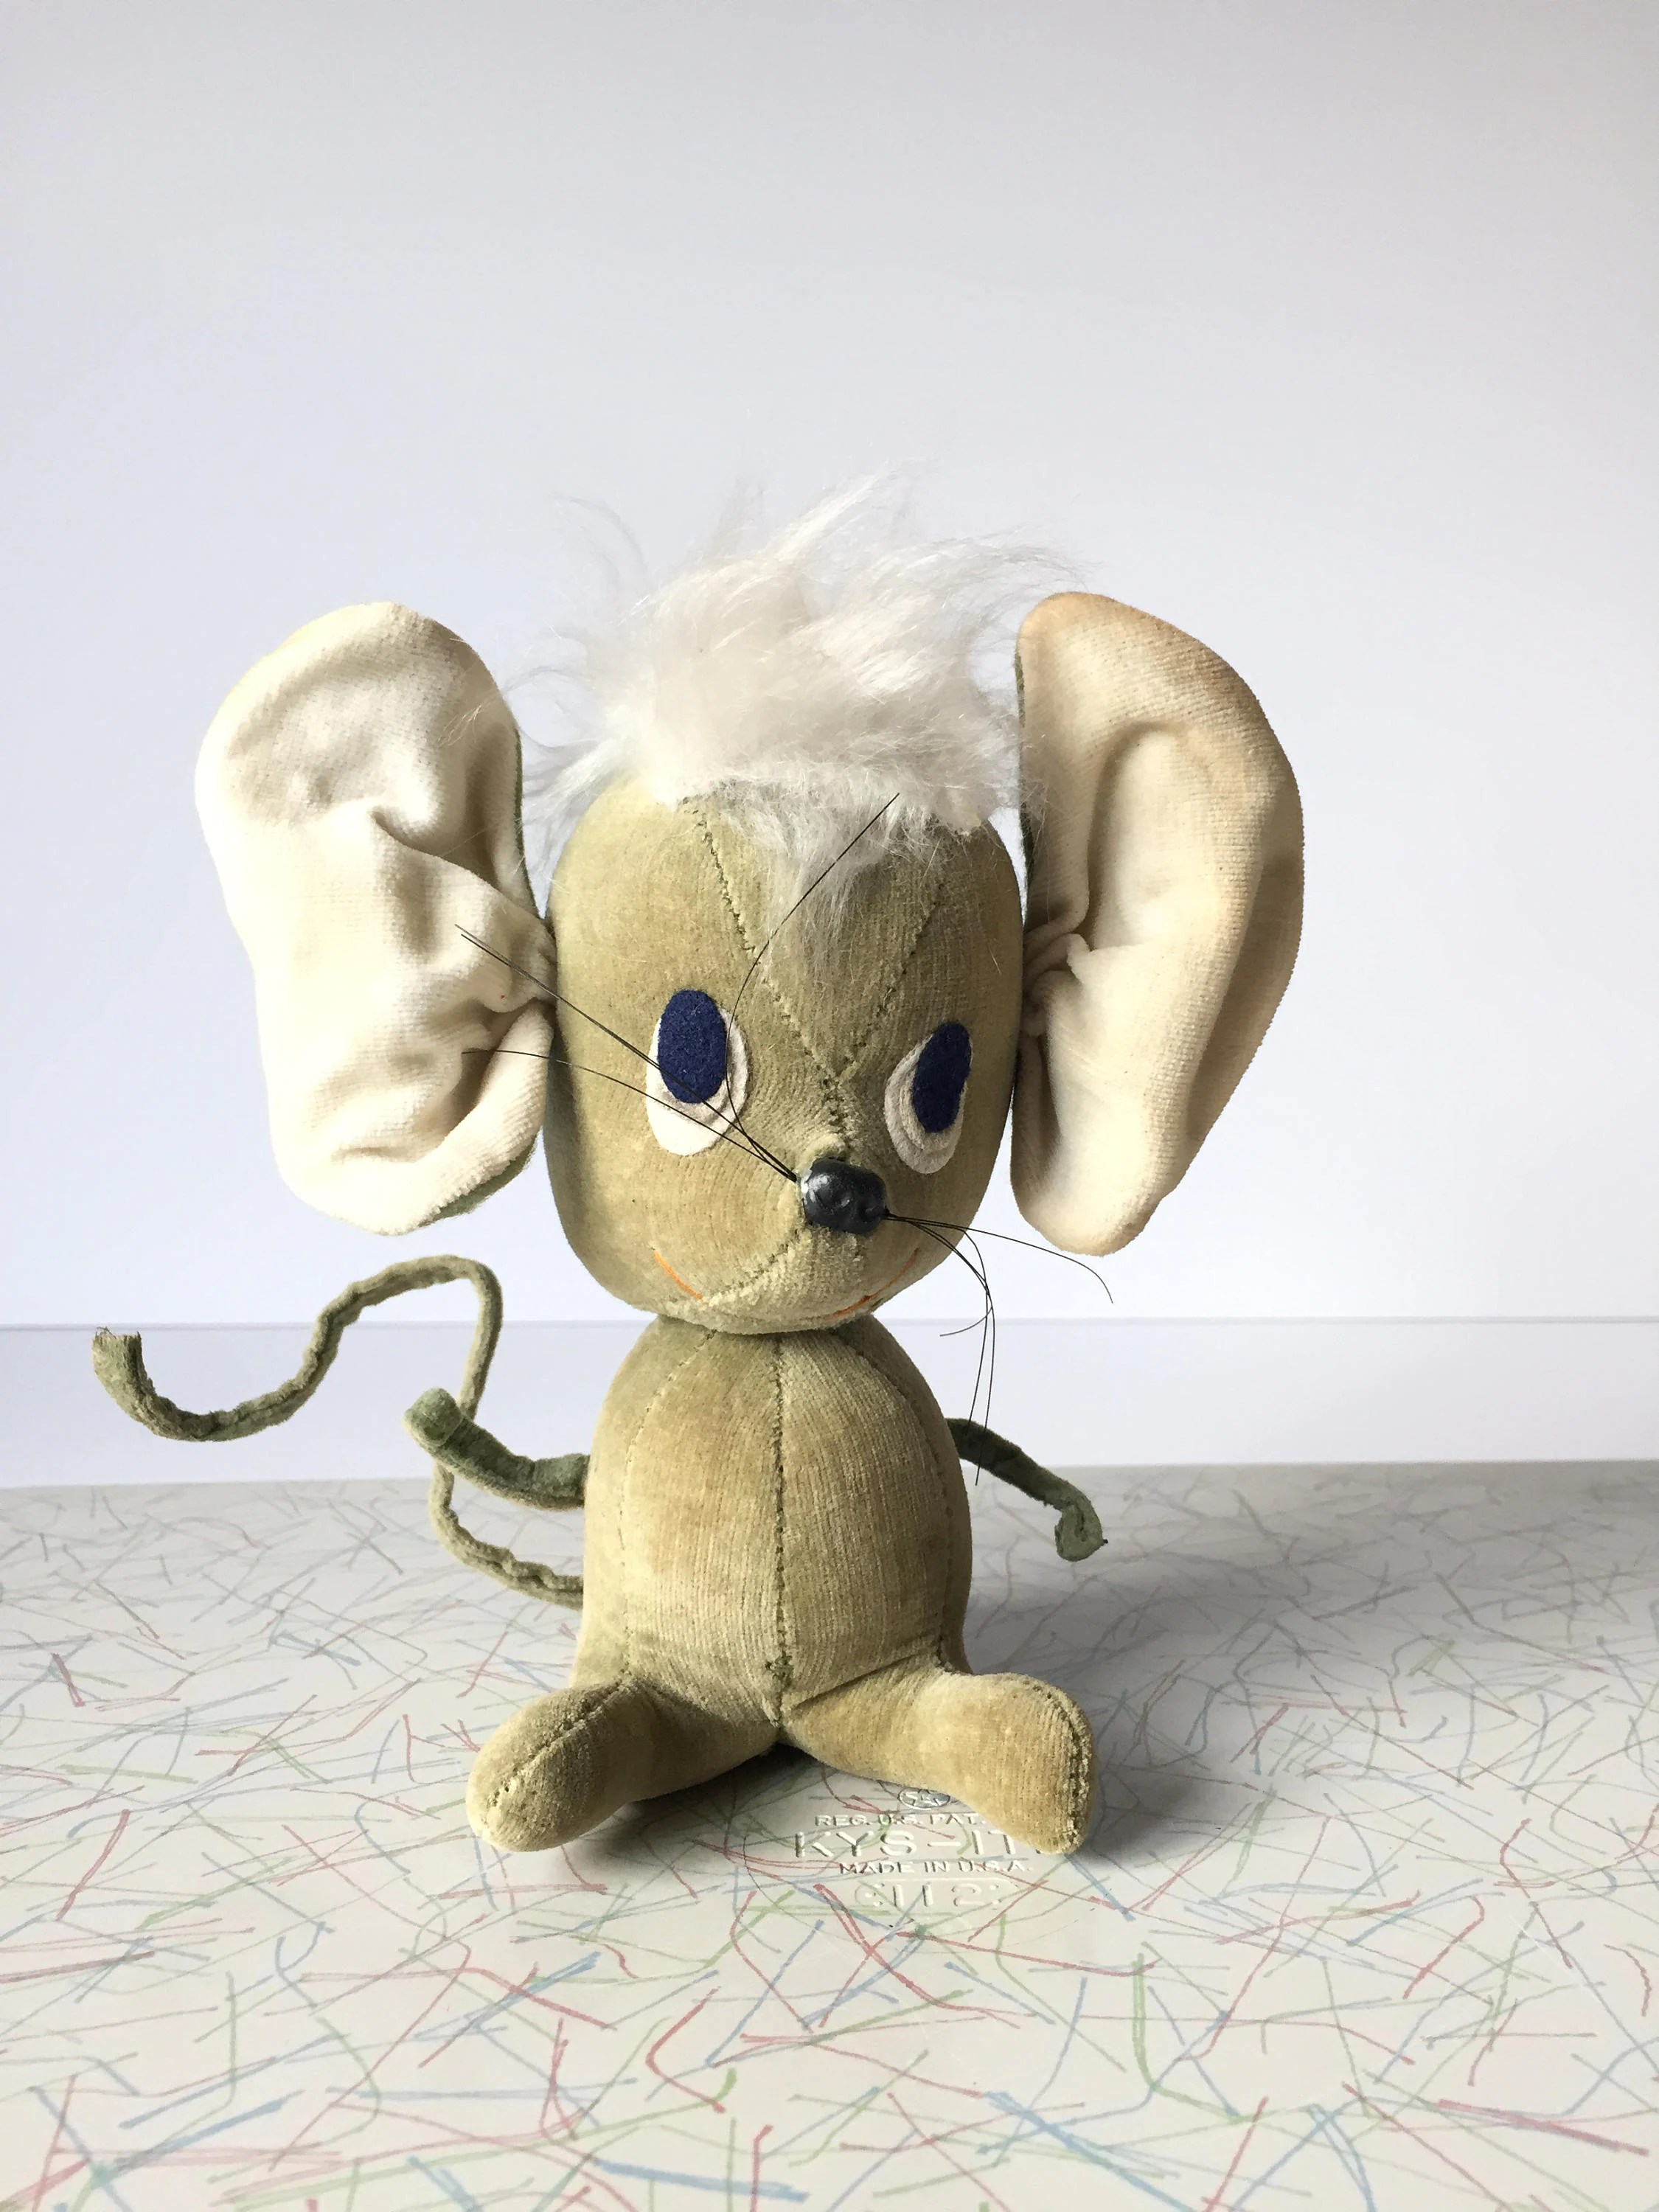 Kamar Vintage Vintage Kamar Stuffed Mouse Collectable Animal Mid Century Toy 1960 S Plush Toy Big Ear Mouse Kitschy Decor Made Japan Free Shipping